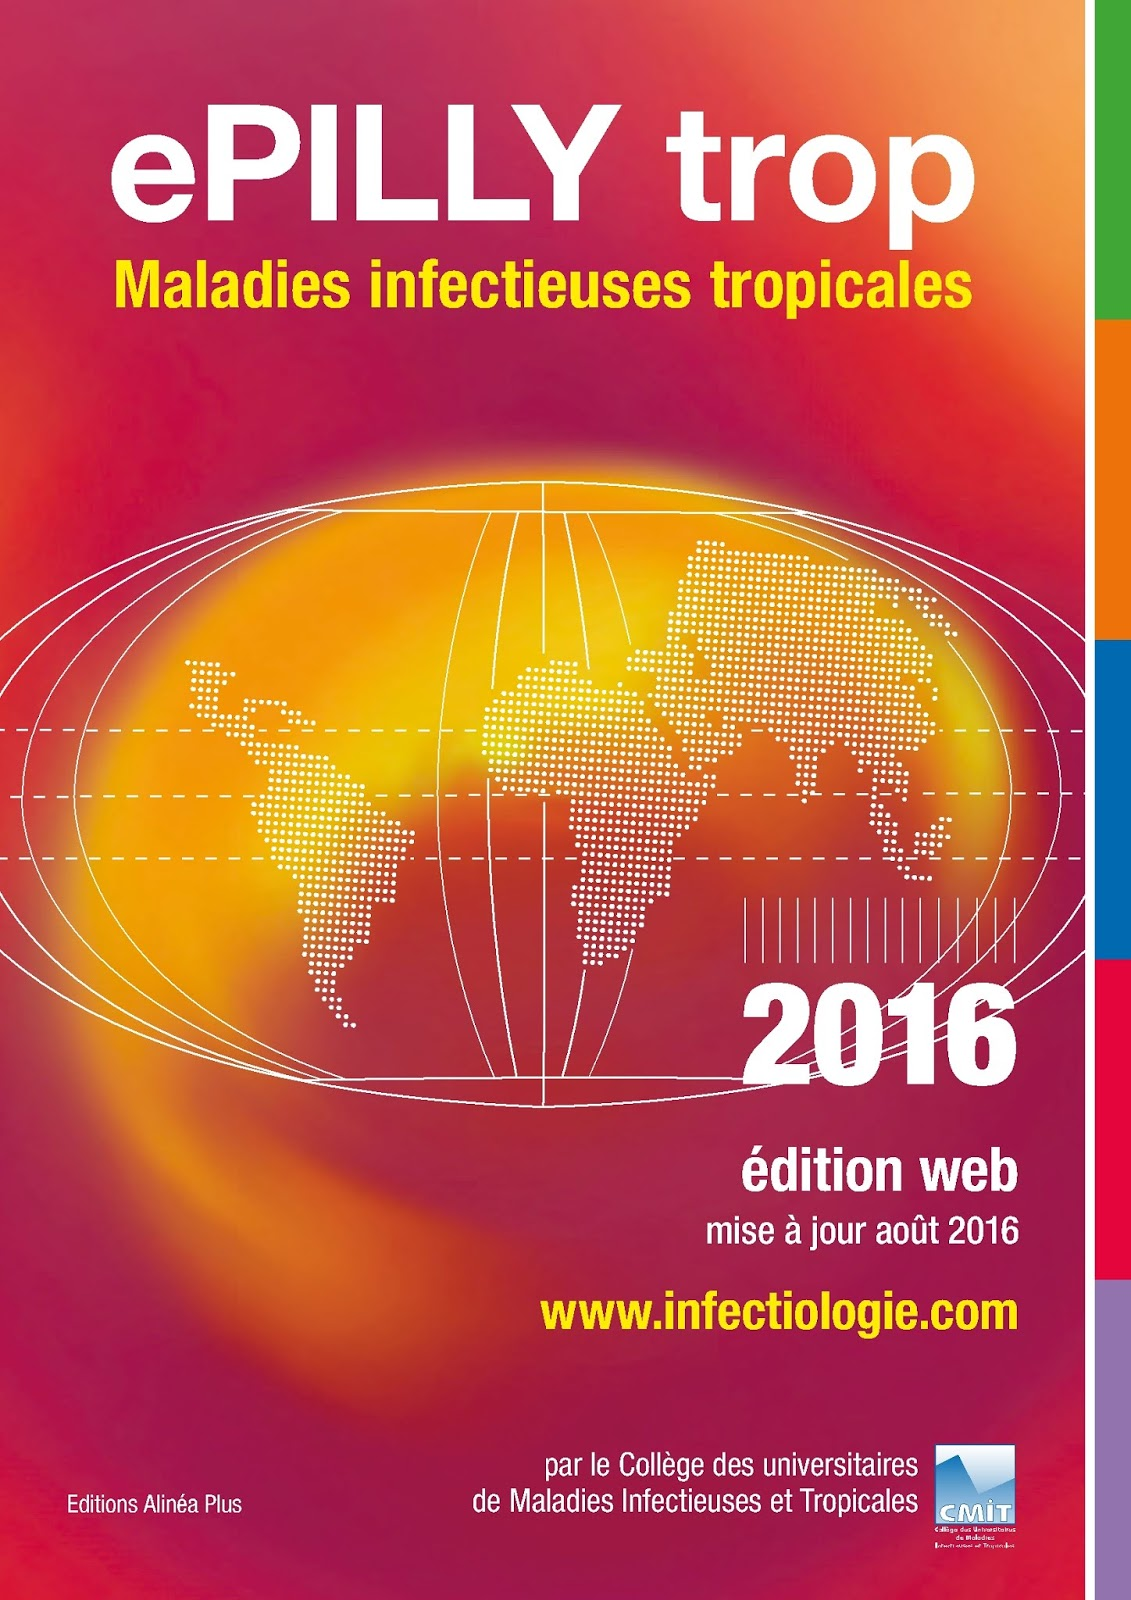 ePILLY trop 2016 Maladies infectieuses tropicales